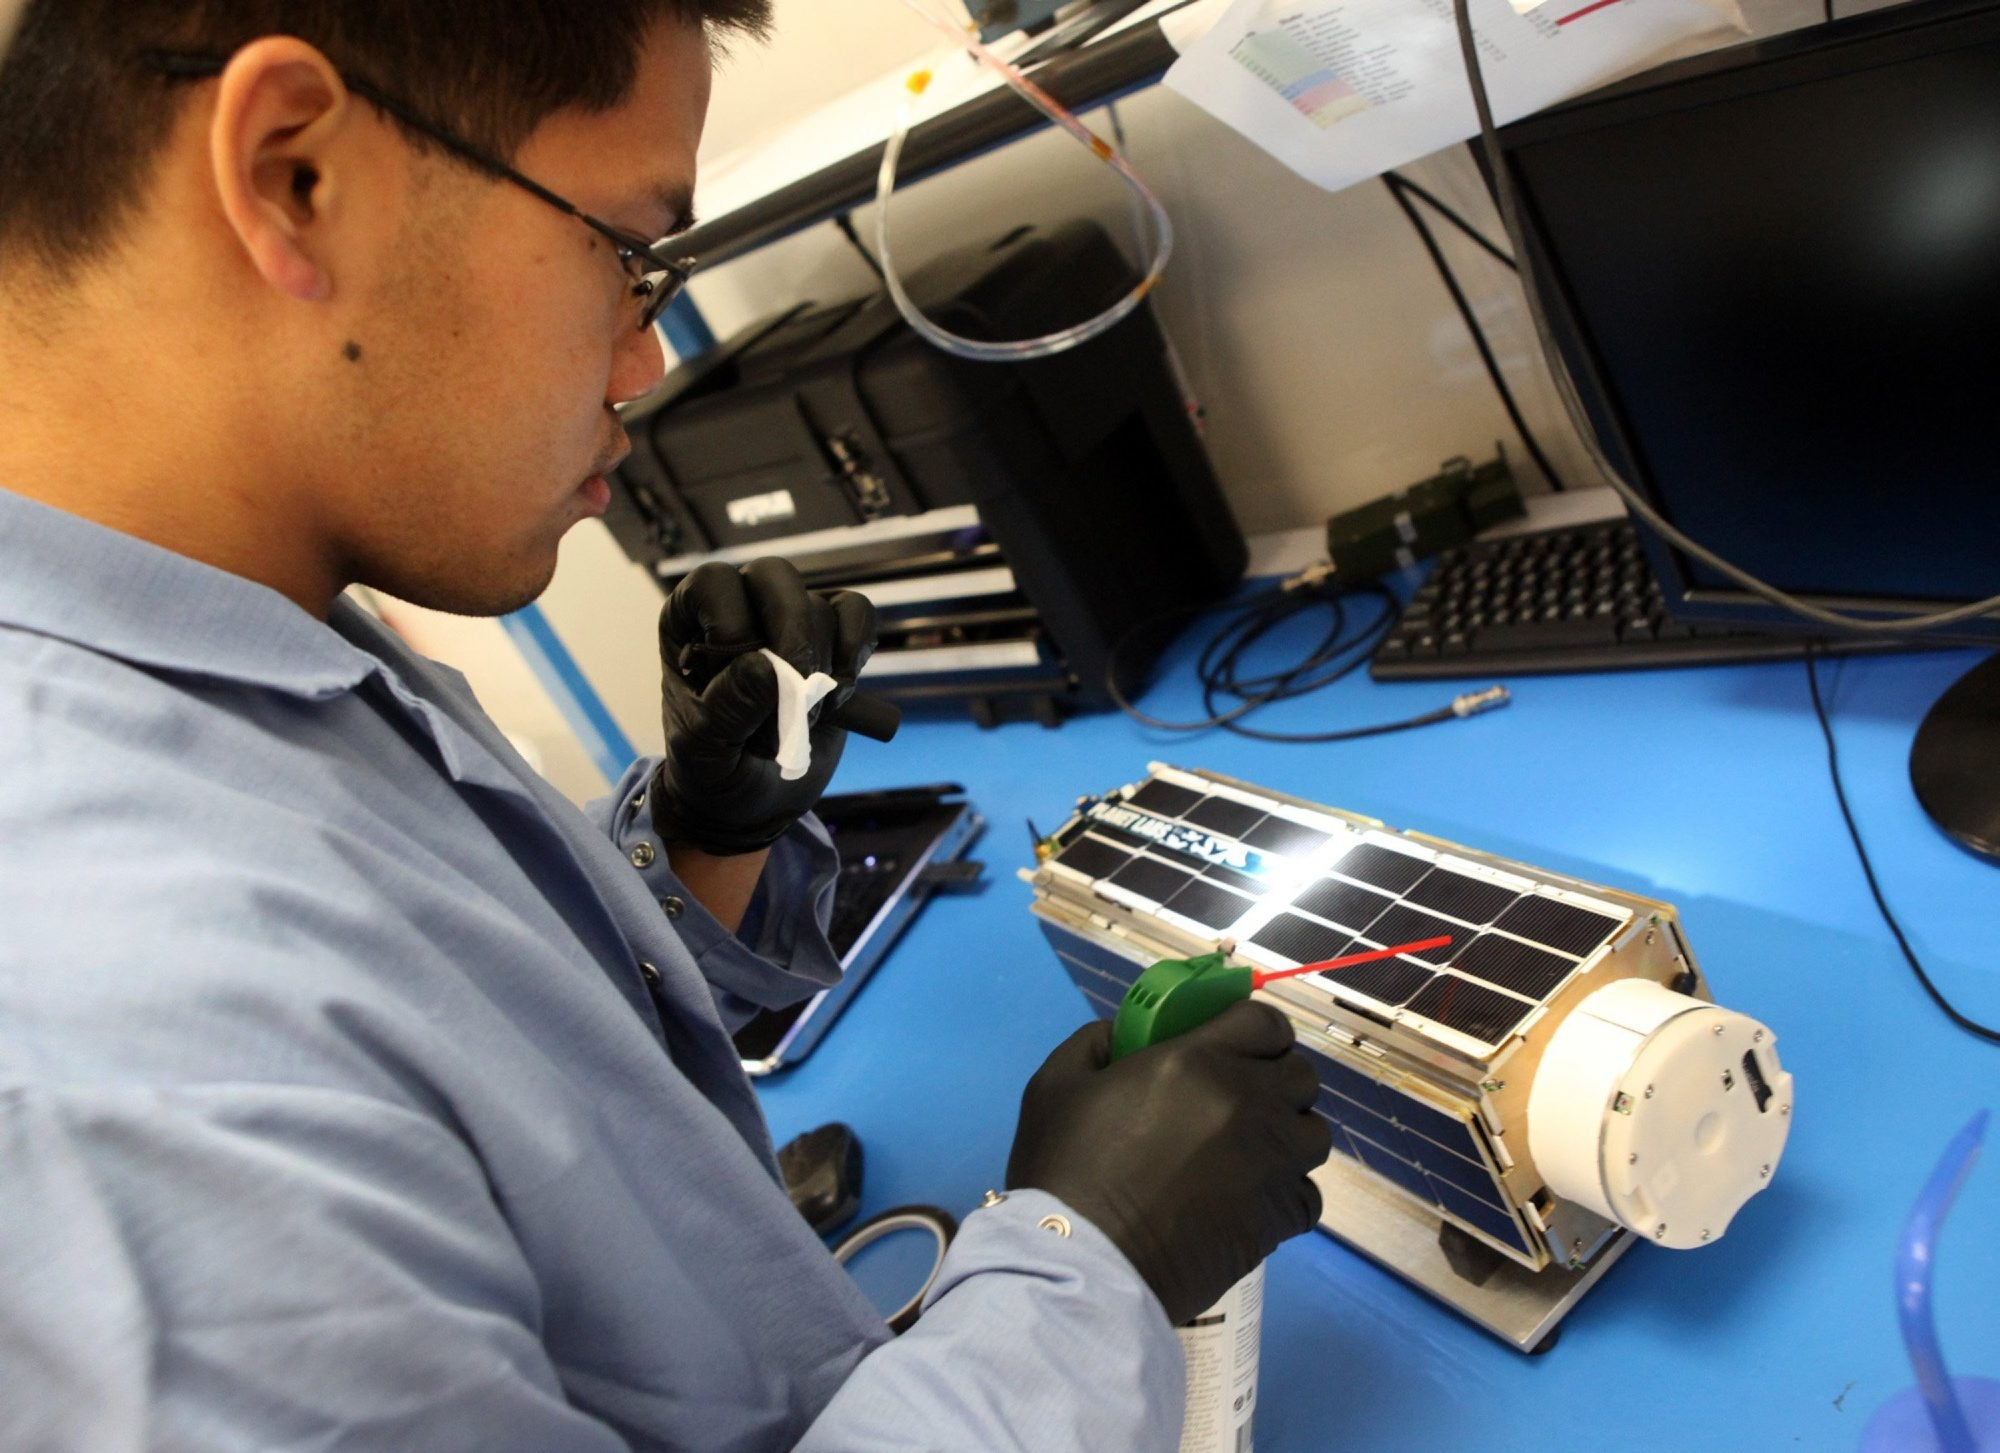 Mechanical engineer Alexander Wen works on a satellite camera at Planet Labs in San Francisco. Dozens of the devices were sent to the International Space Station for deployment.